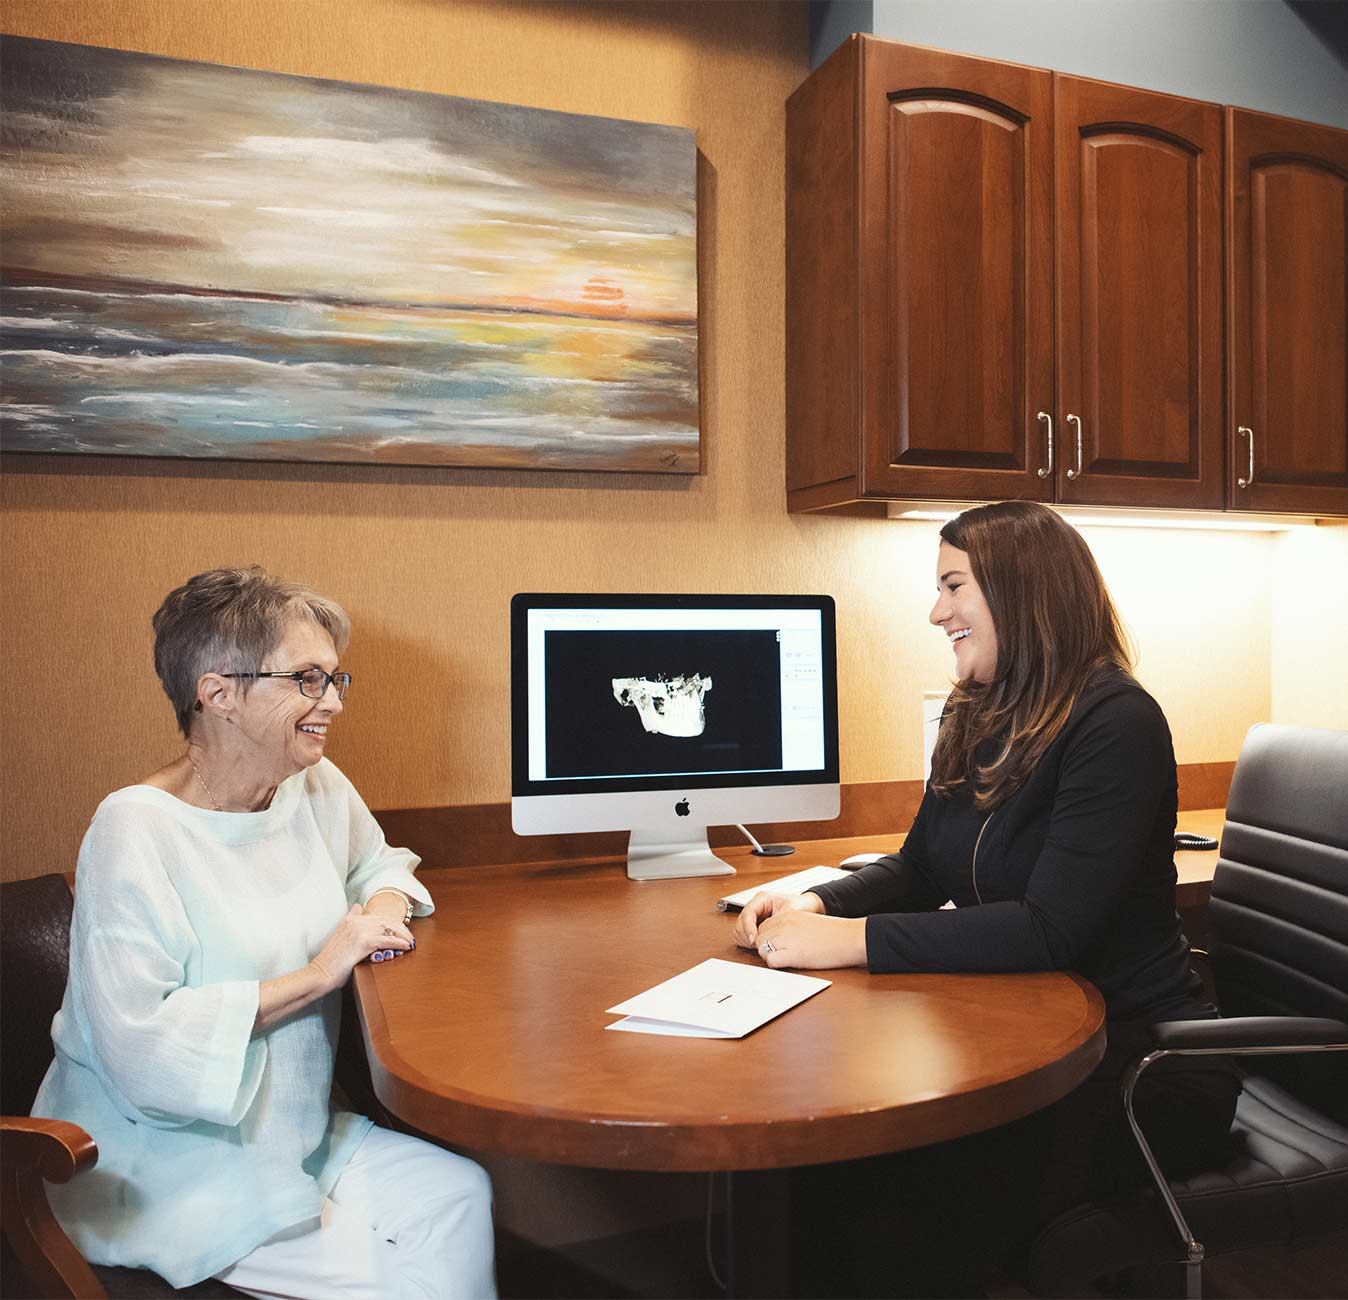 Photo of Dr. Boren and a patient sitting at a desk looking at a computer screen